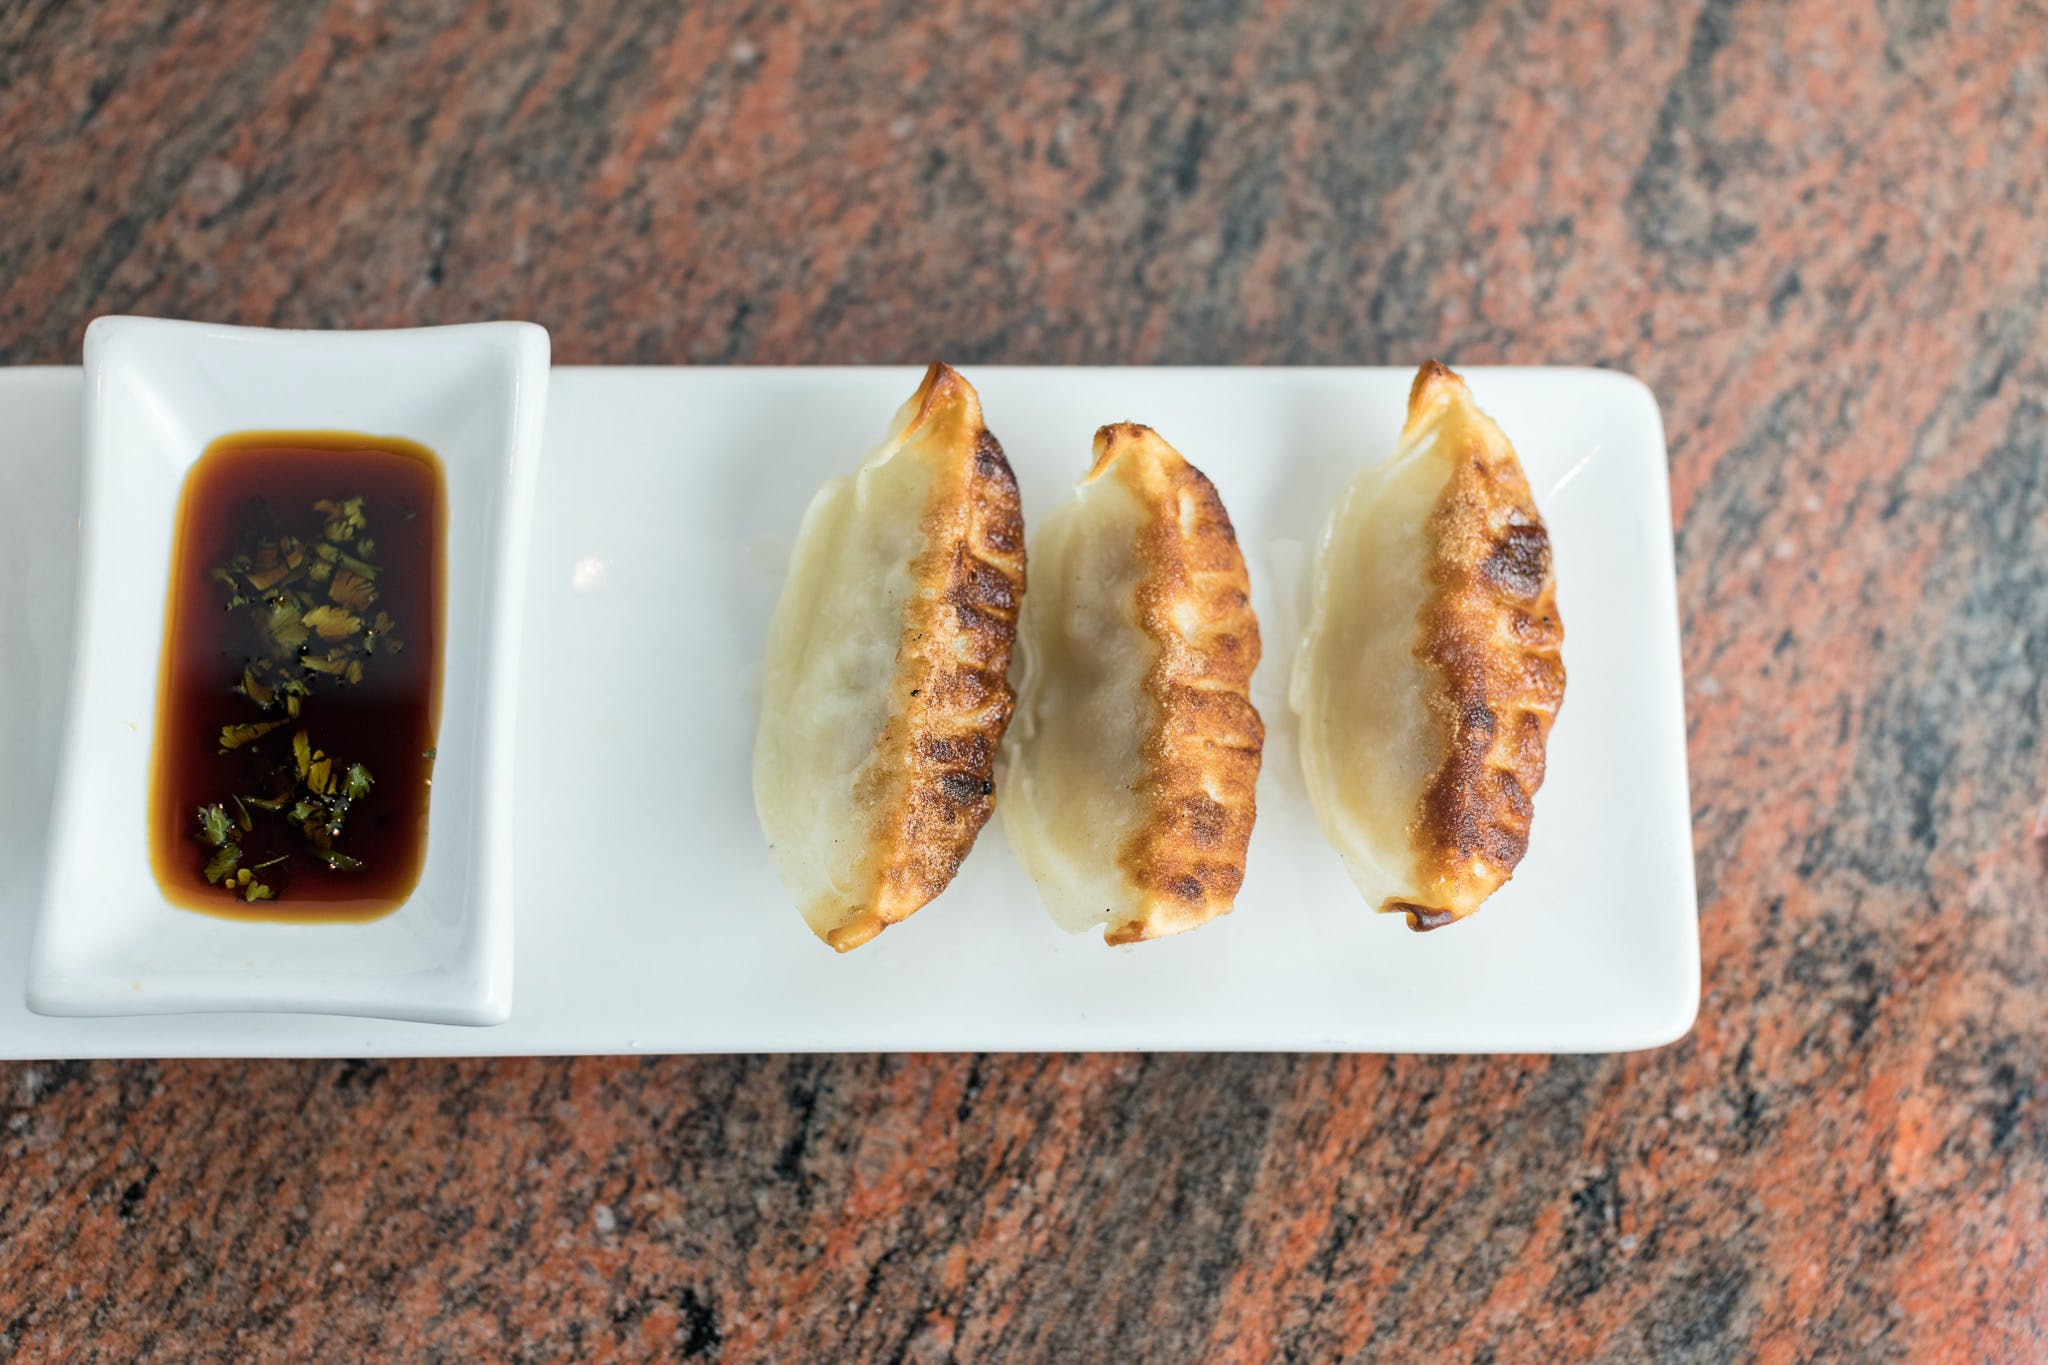 Gyoza (Pork) from Shanghai Bistro in Eau Claire, WI